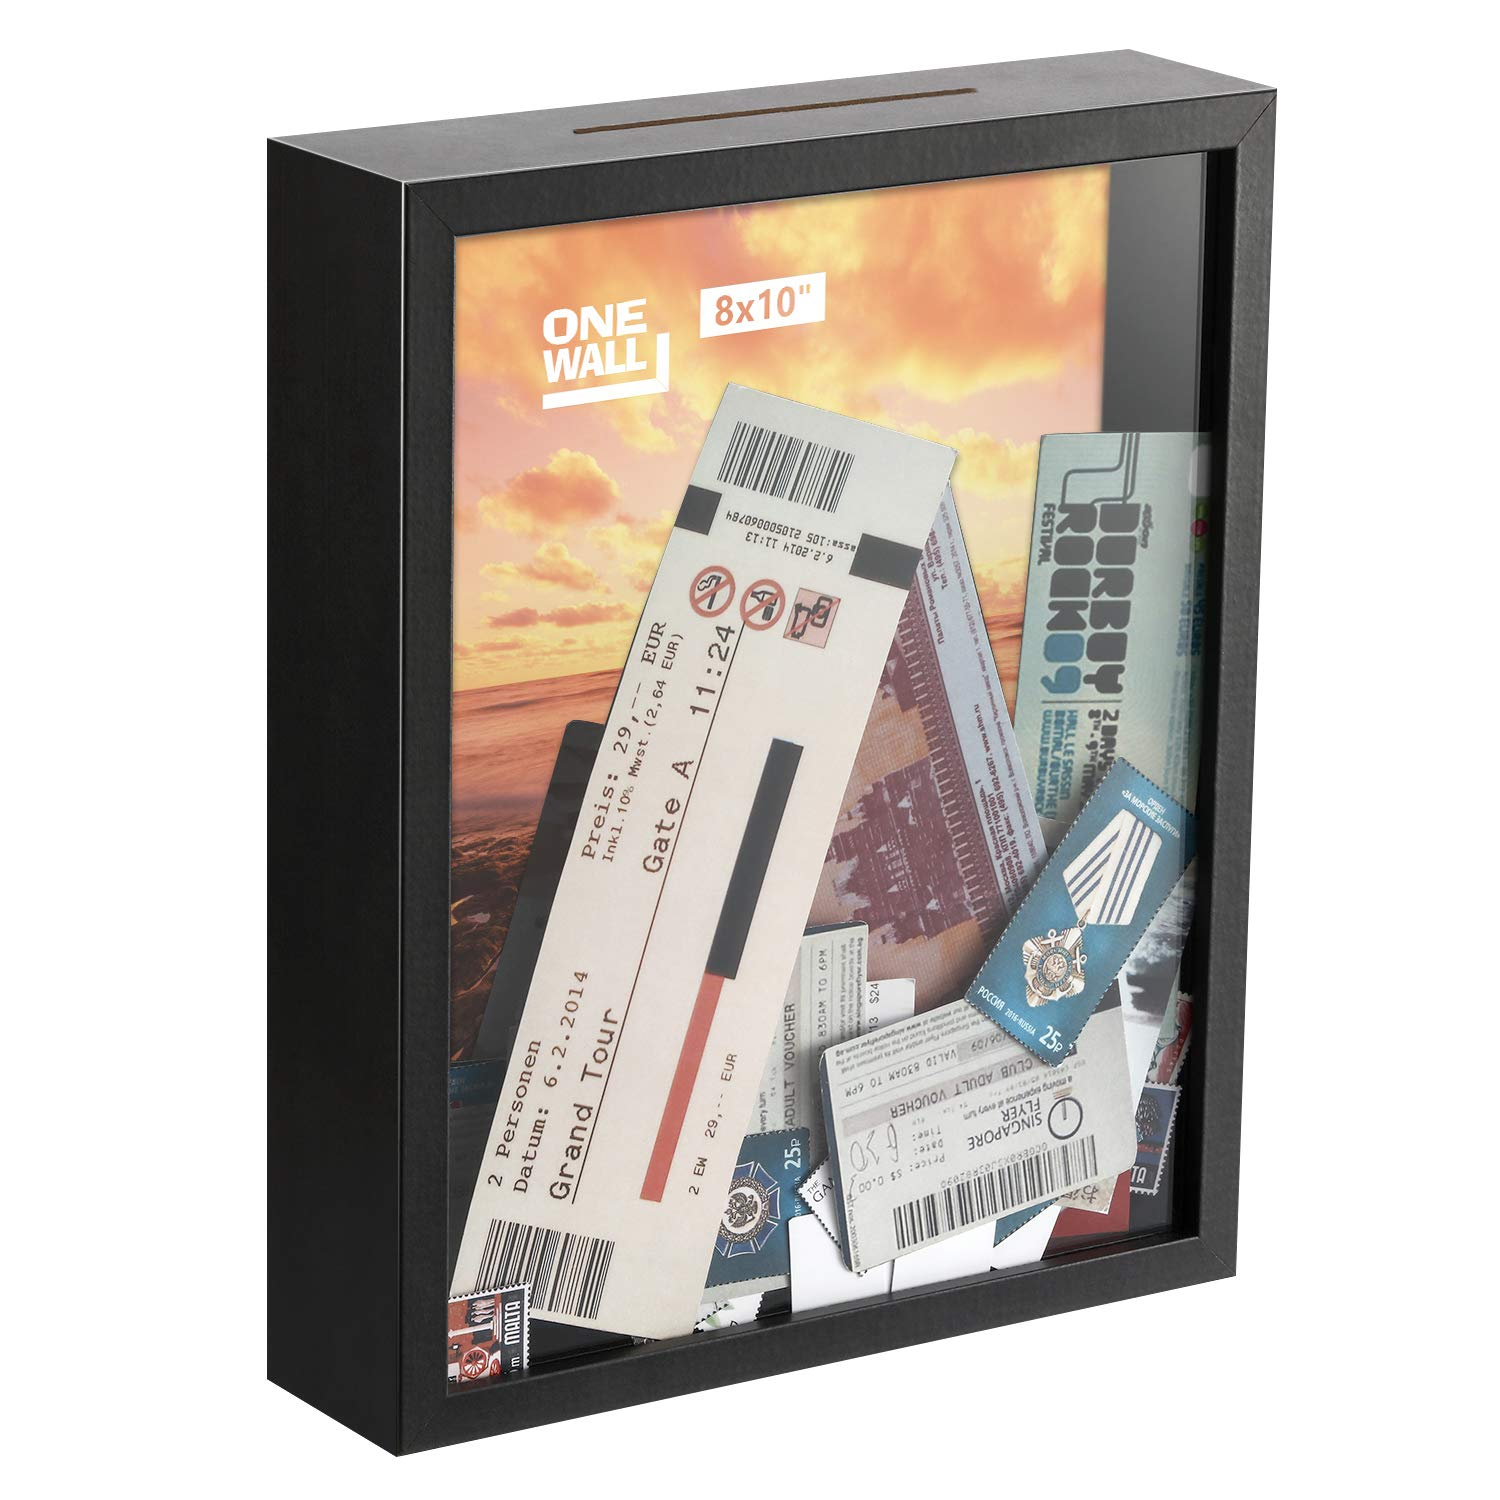 ONE WALL 8x10 Inch Shadow Box Display Case Black Wood Frame with Top Loading for Memorable Stamps, Tickets for Wall and Tabletop - Mounting Hardware Included by ONE WALL